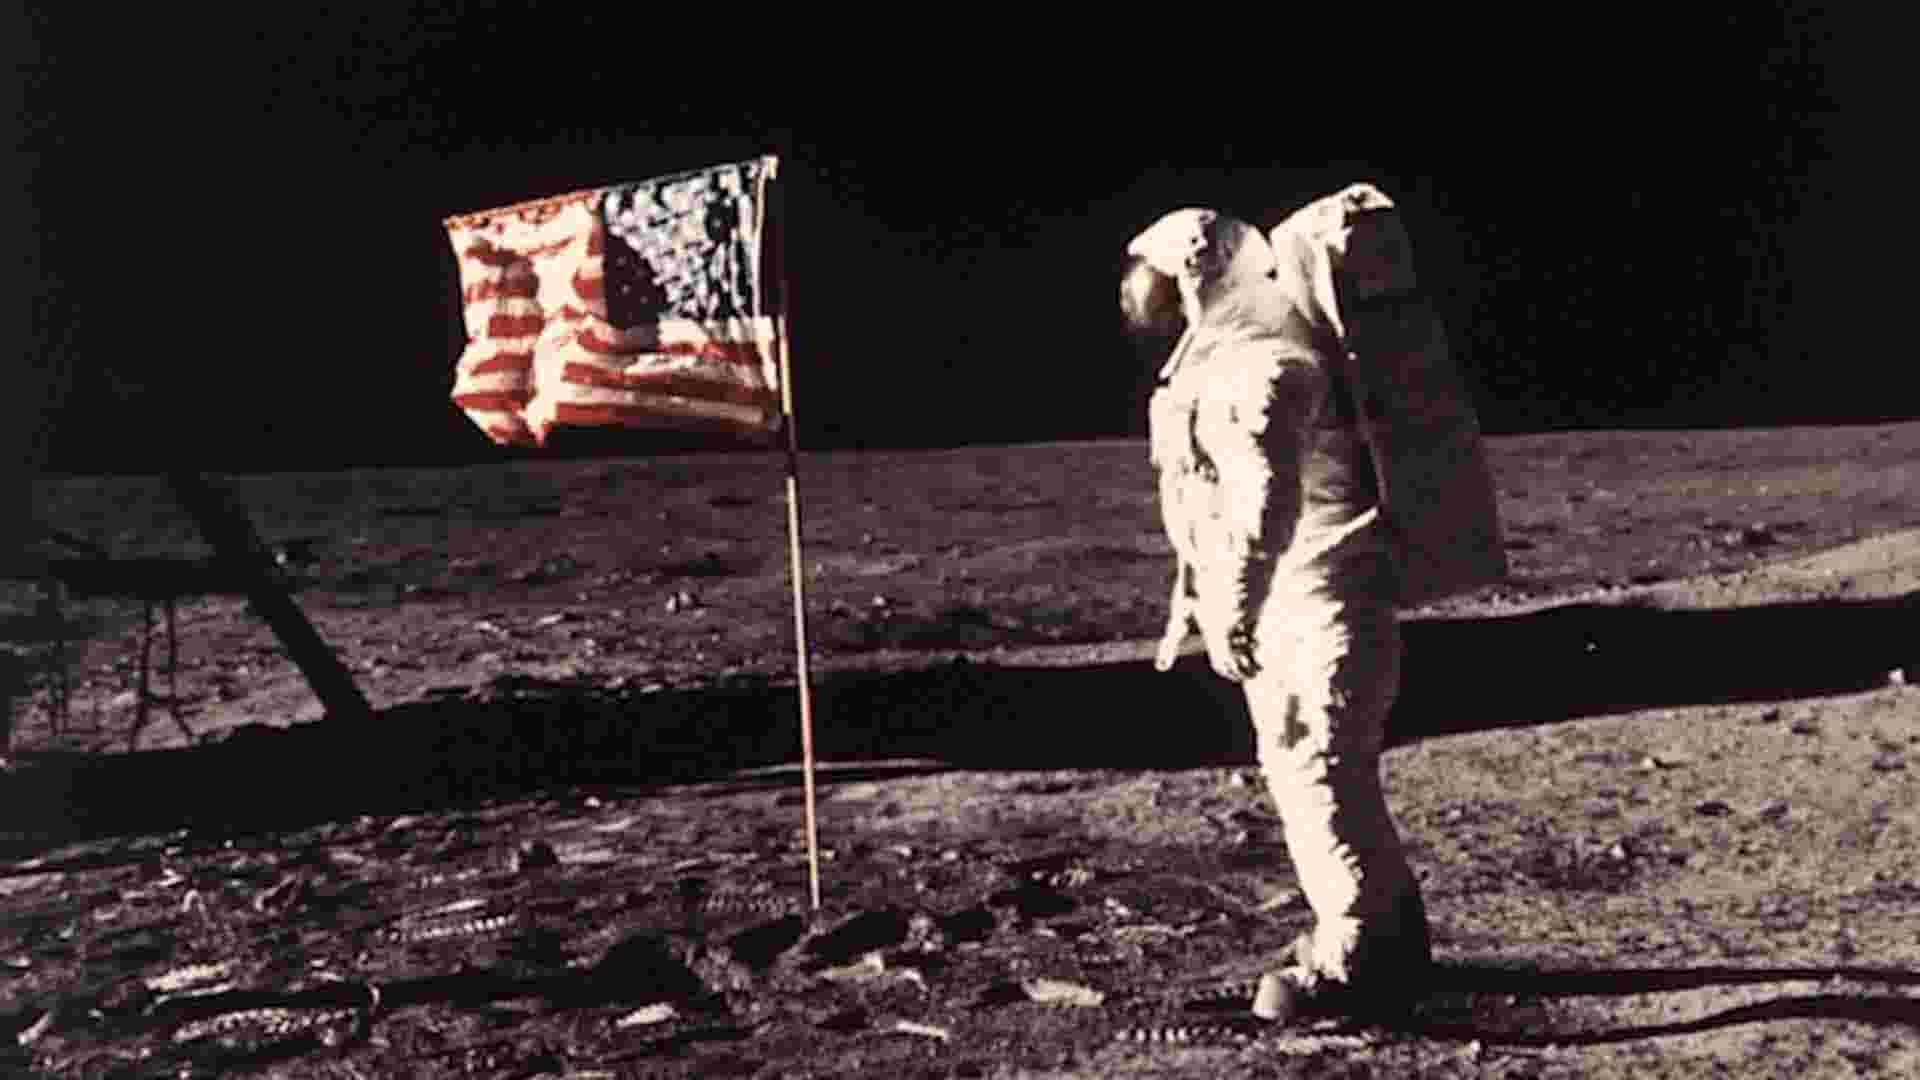 Take one giant leap to the couch: Here's the Apollo 11 anniversary TV schedule